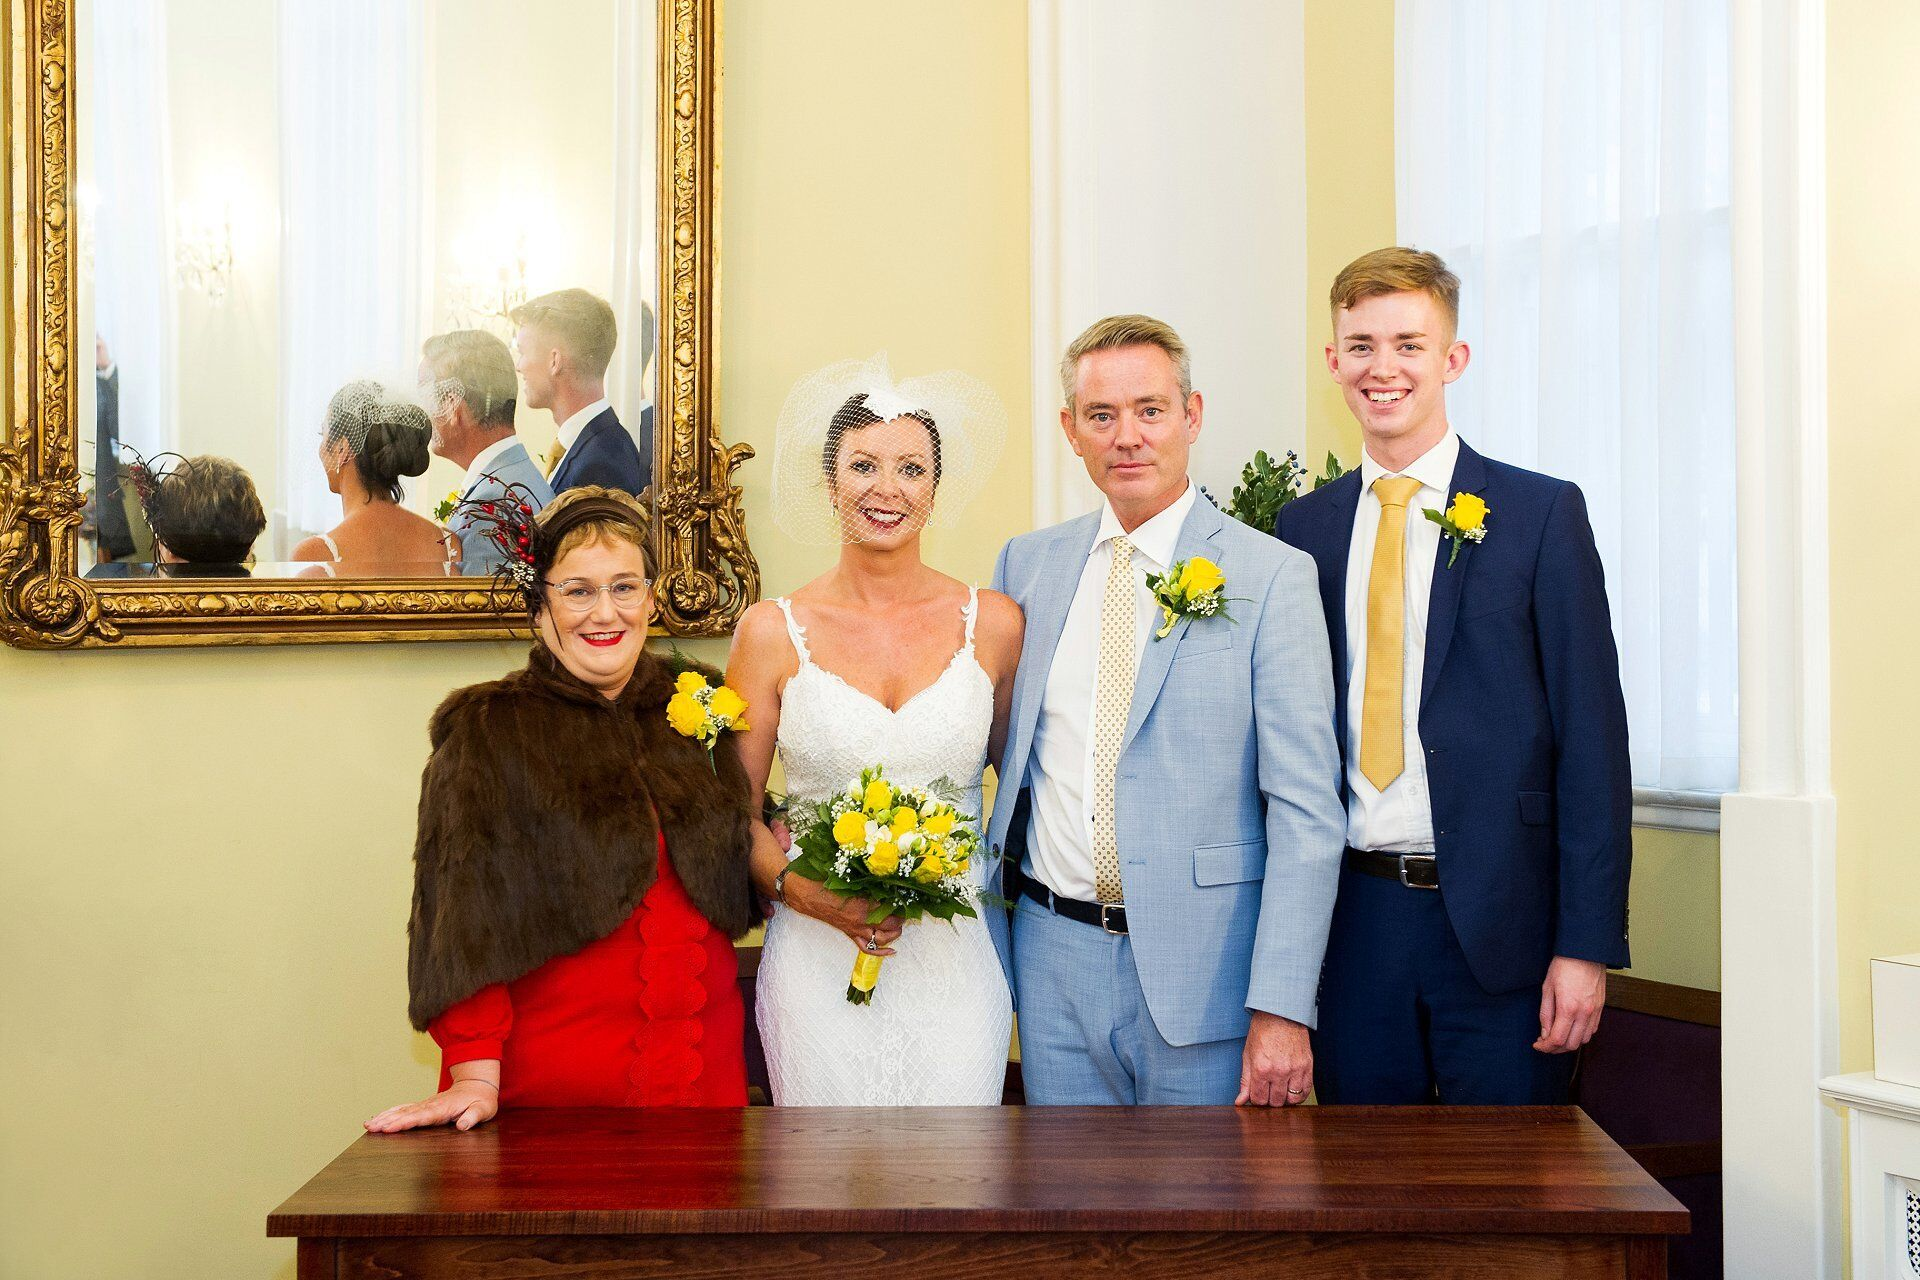 bride and groom and their two witnesses pose for a photograph in the brydon room at chelsea old town hall